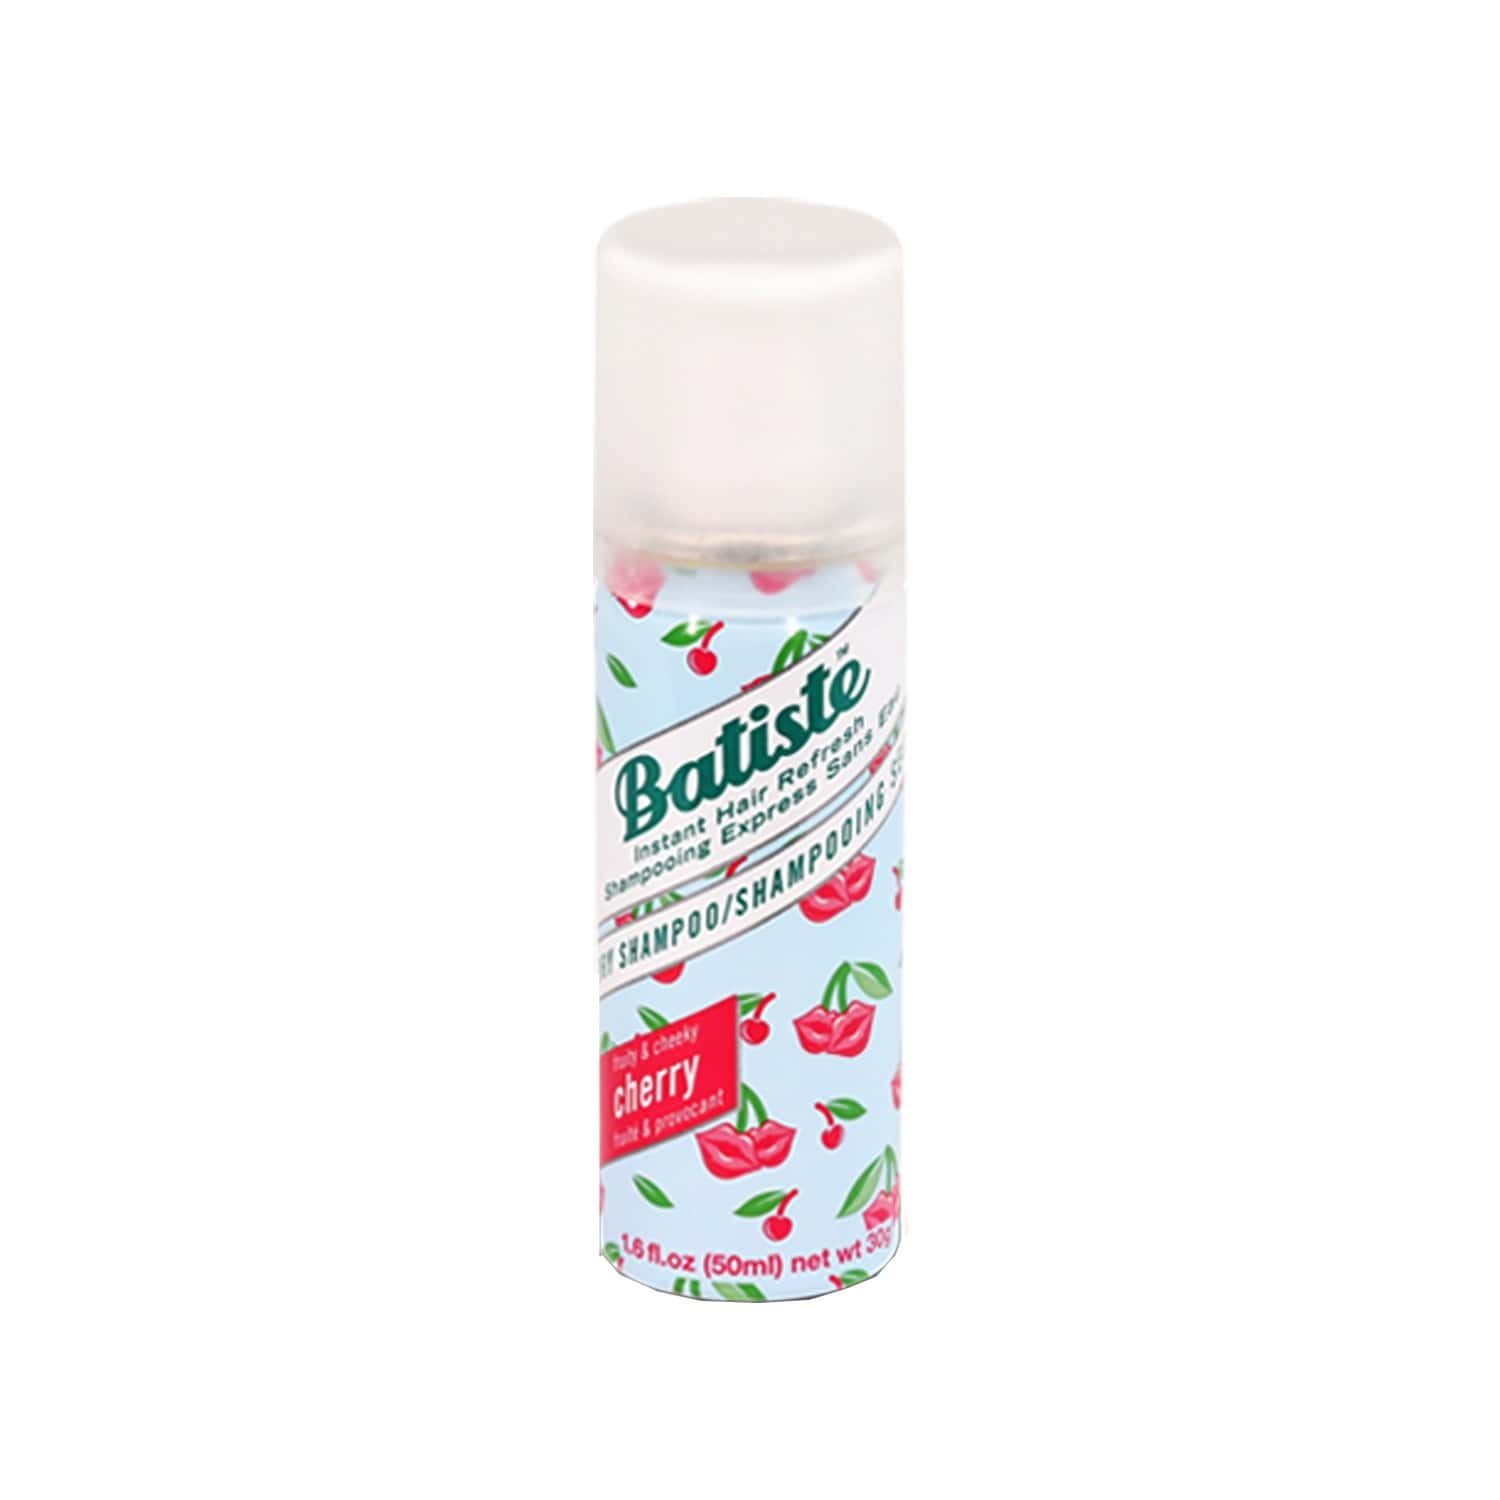 Batiste Instant Hair Refresh Dry Shampoo - Fruity & Cheeky Cherry - 50ml